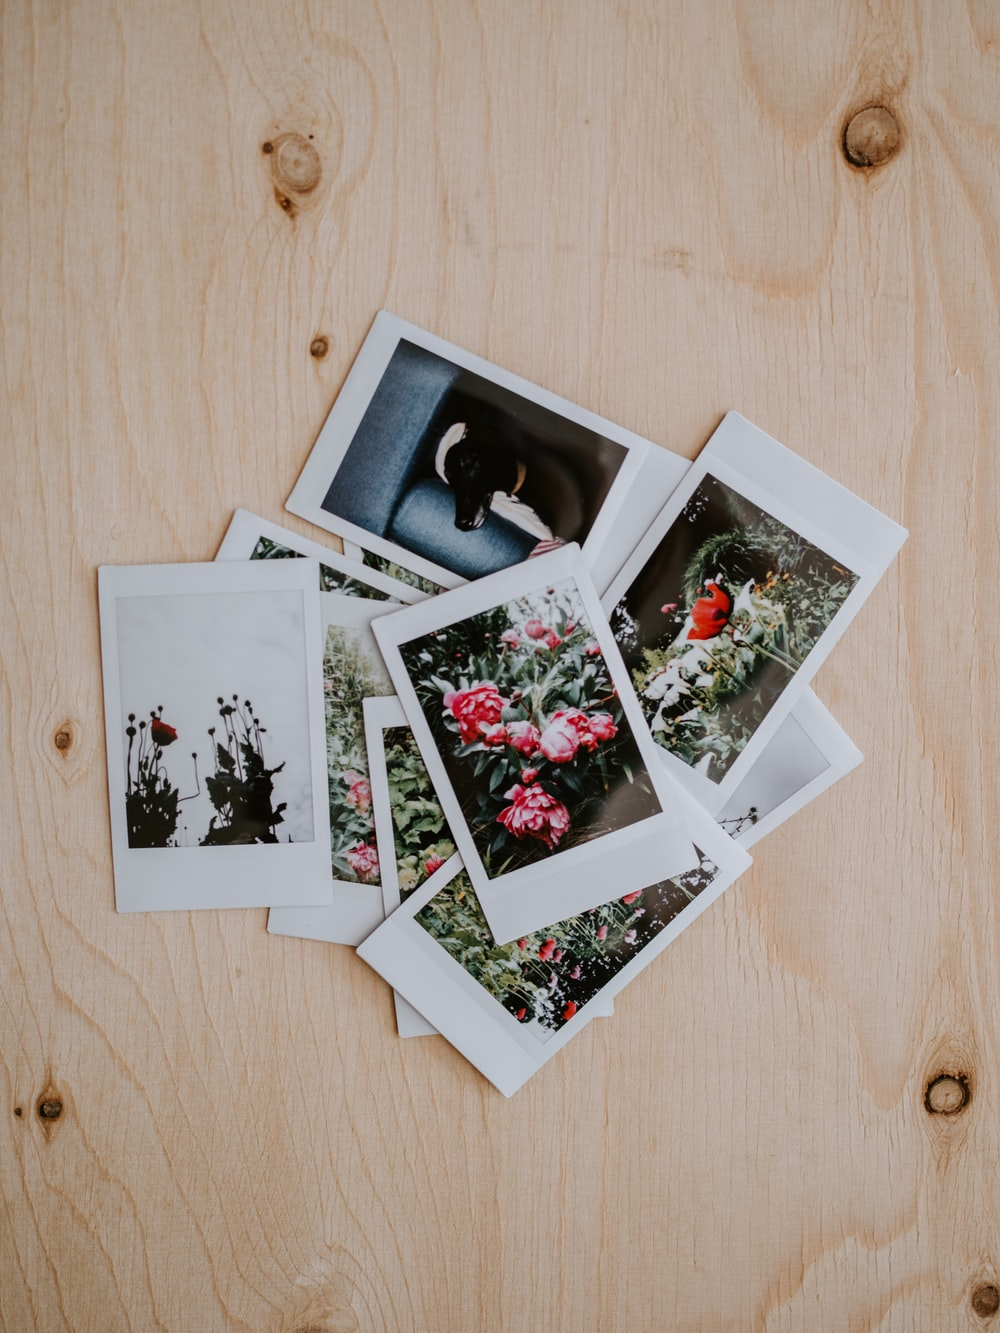 instant photos of flowers on brown wooden pane